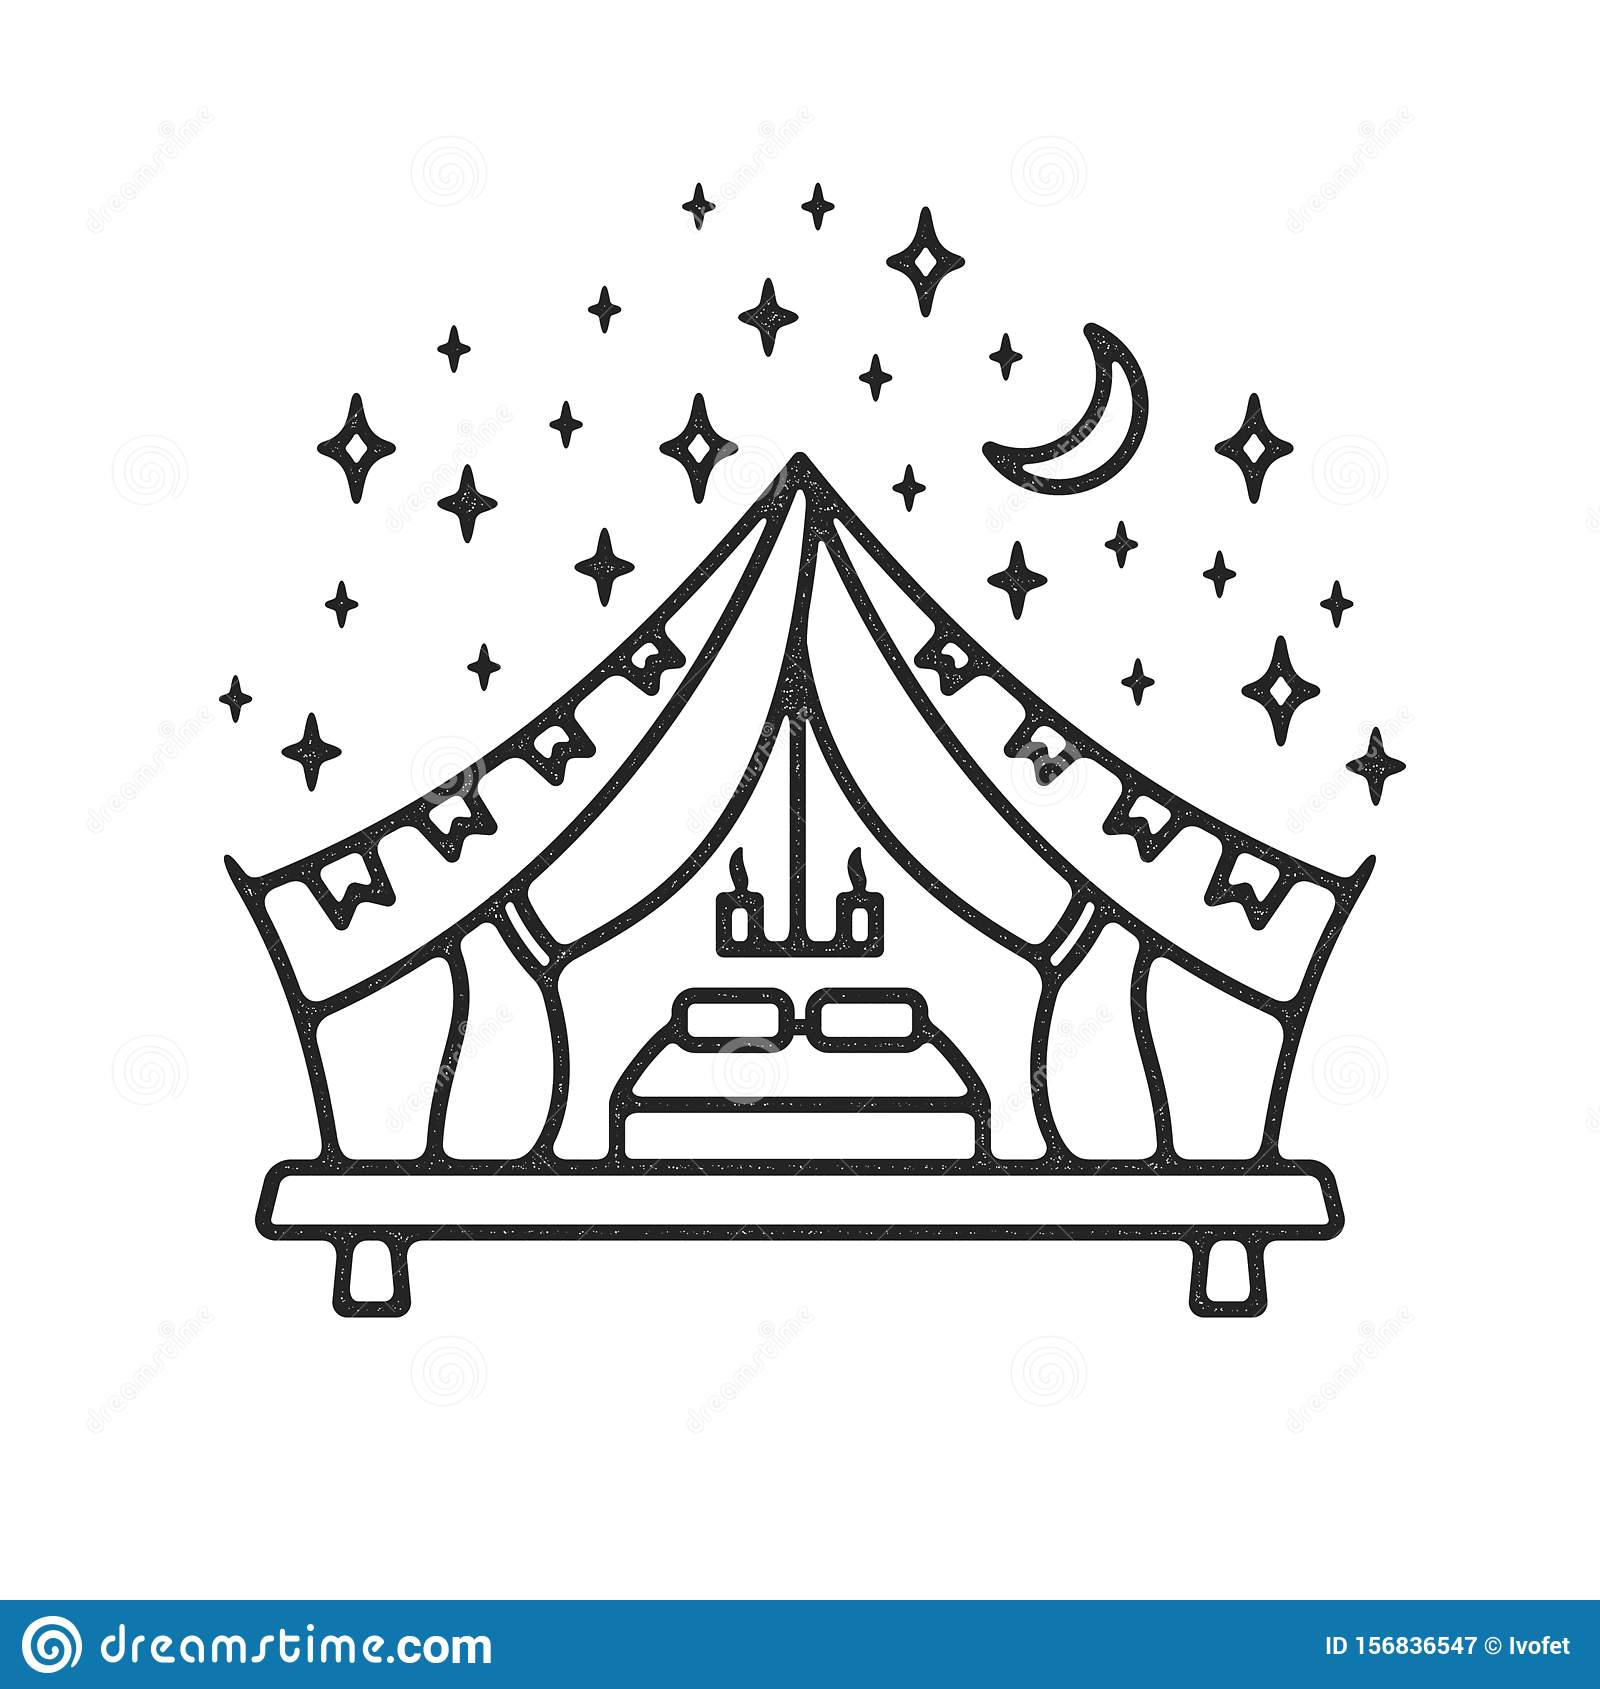 Glamping tent grunge logo stock vector. Illustration of luxurious - 156836547